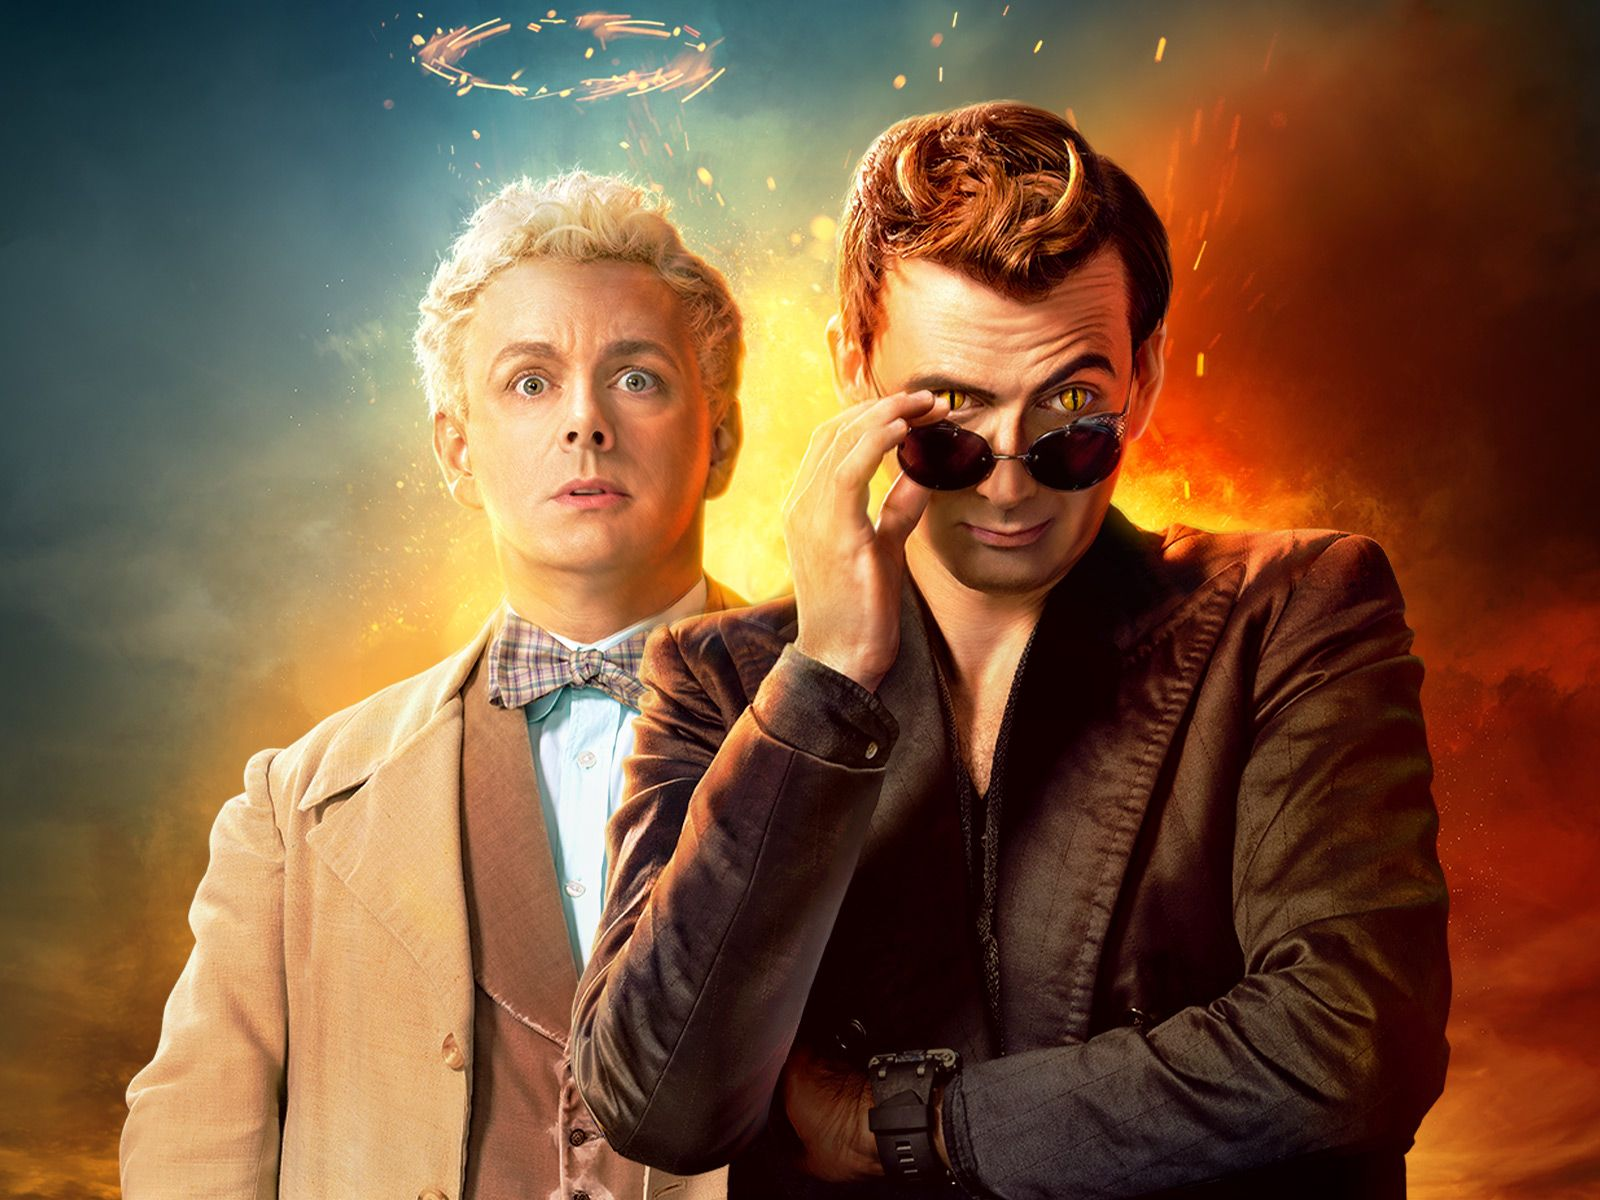 Good Omens Wallpapers - Top Free Good Omens Backgrounds ...